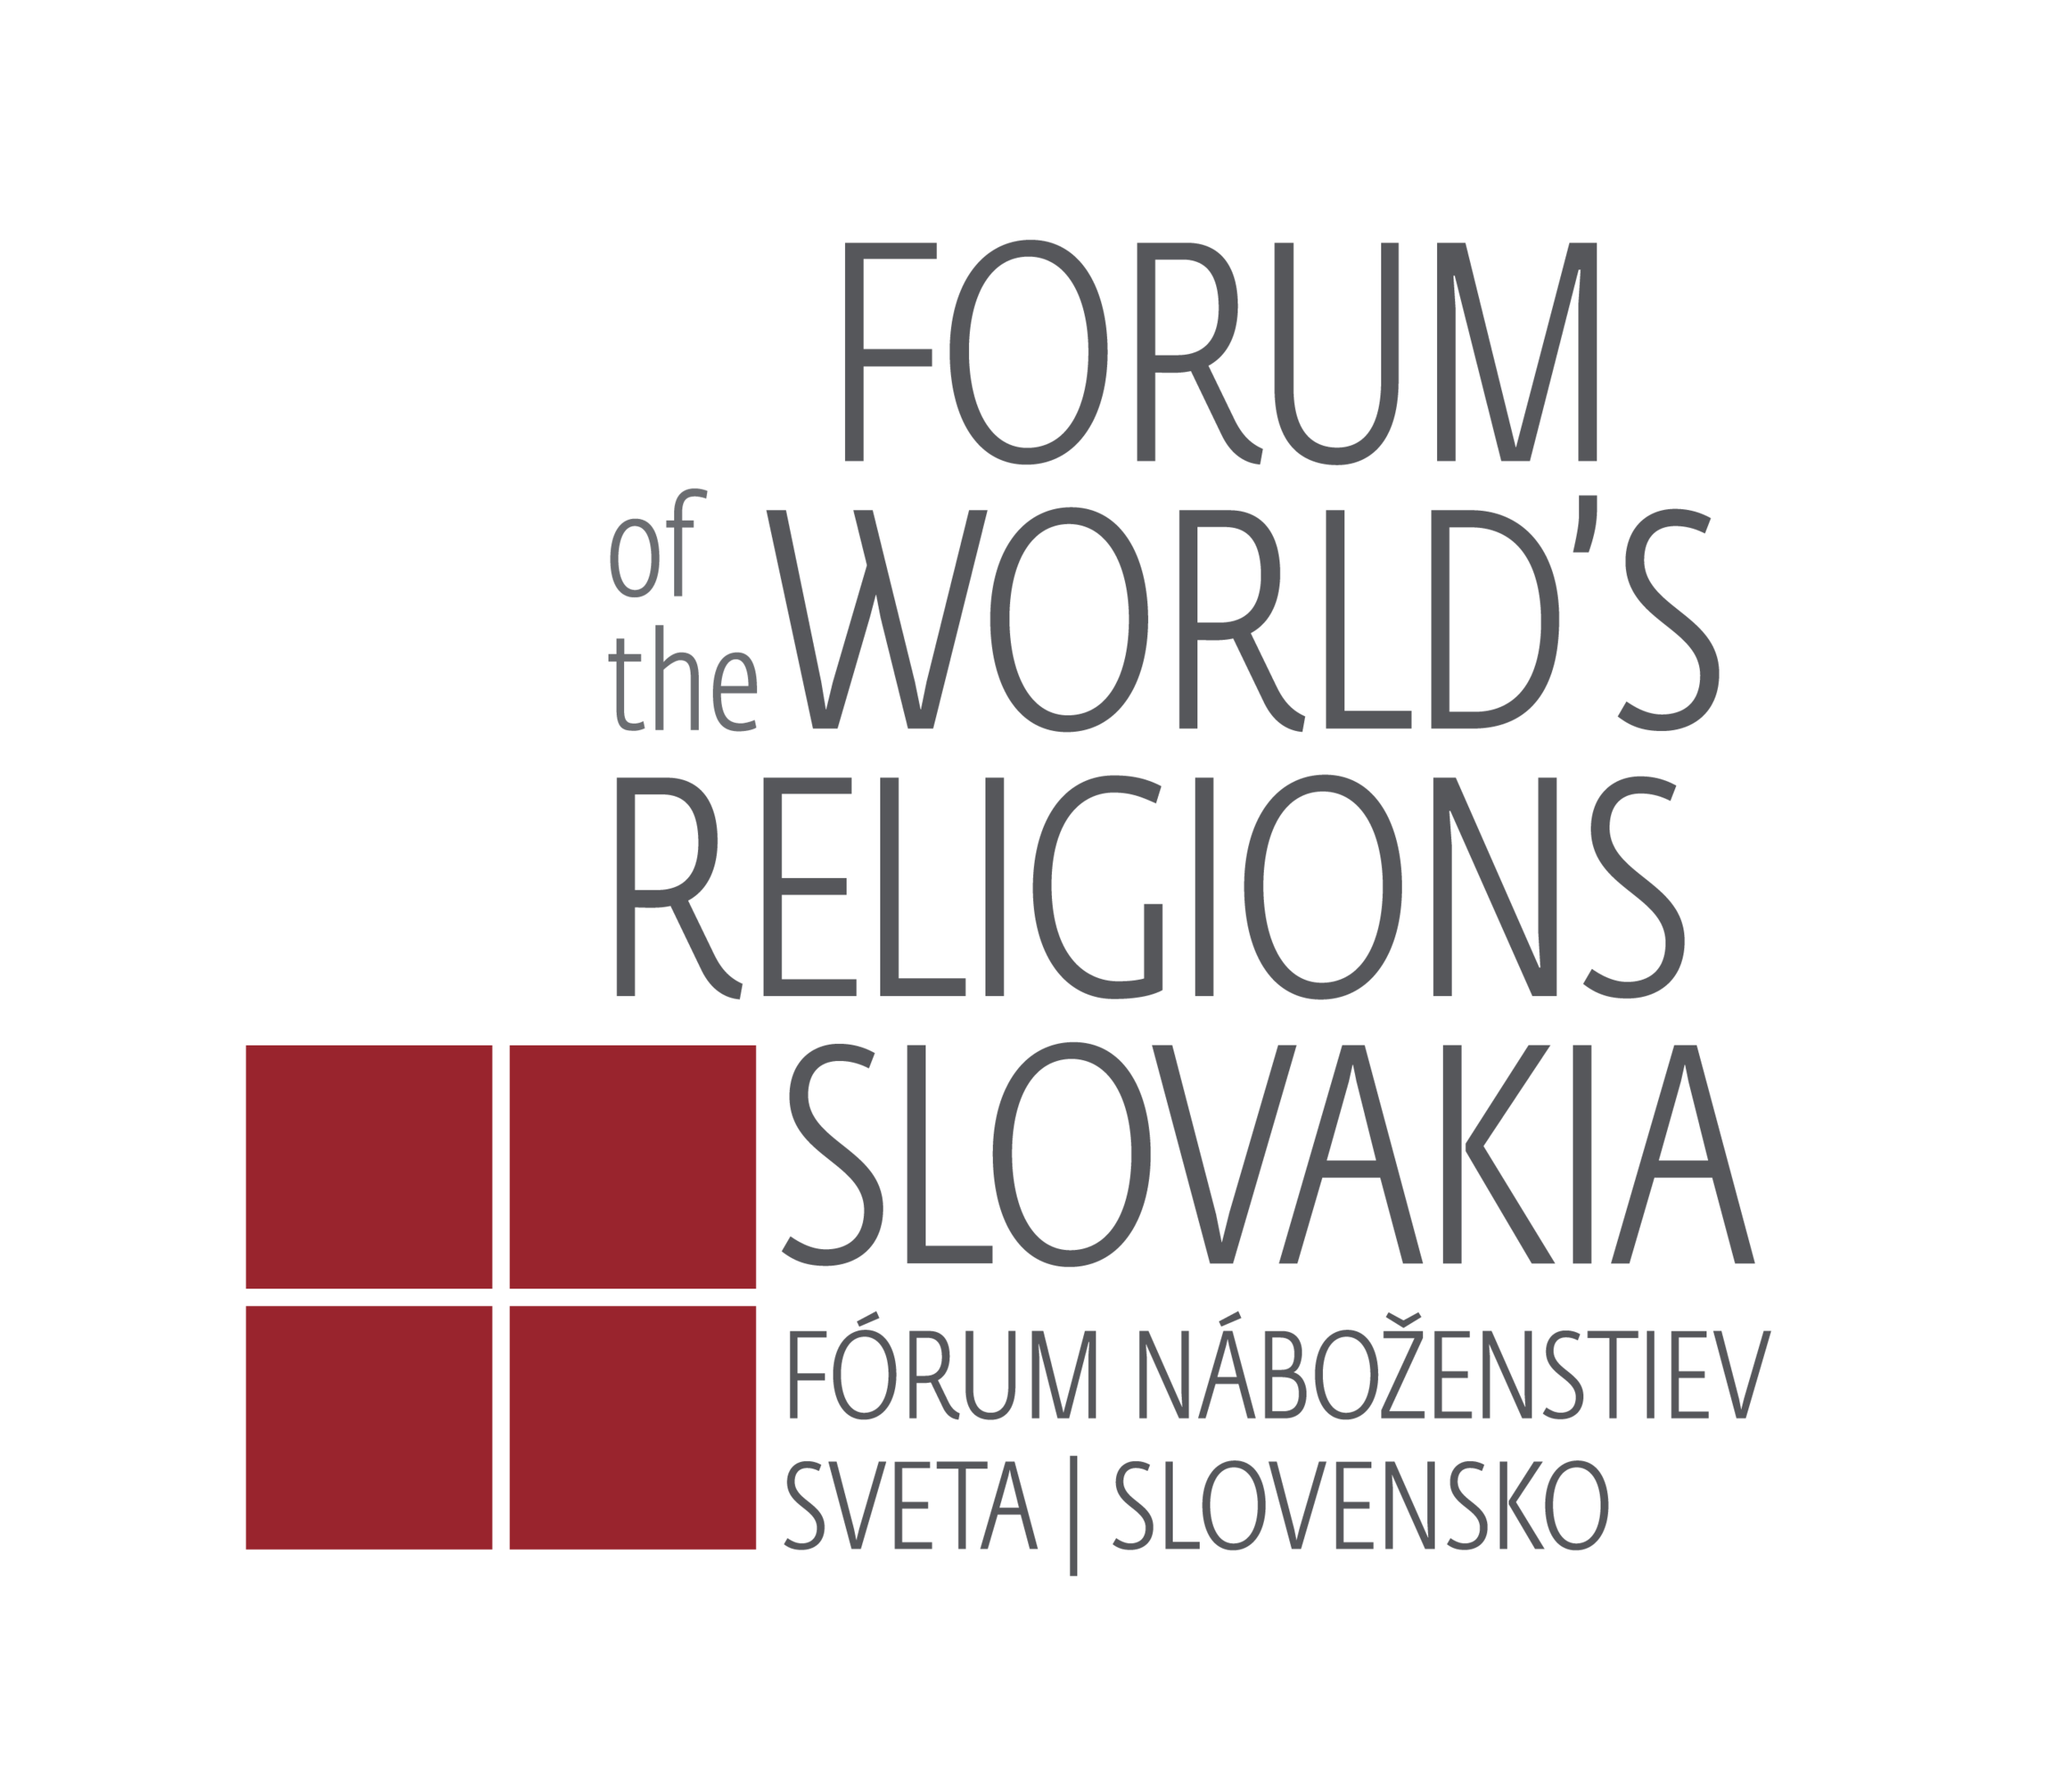 Forum of the World's Religions Slovakia